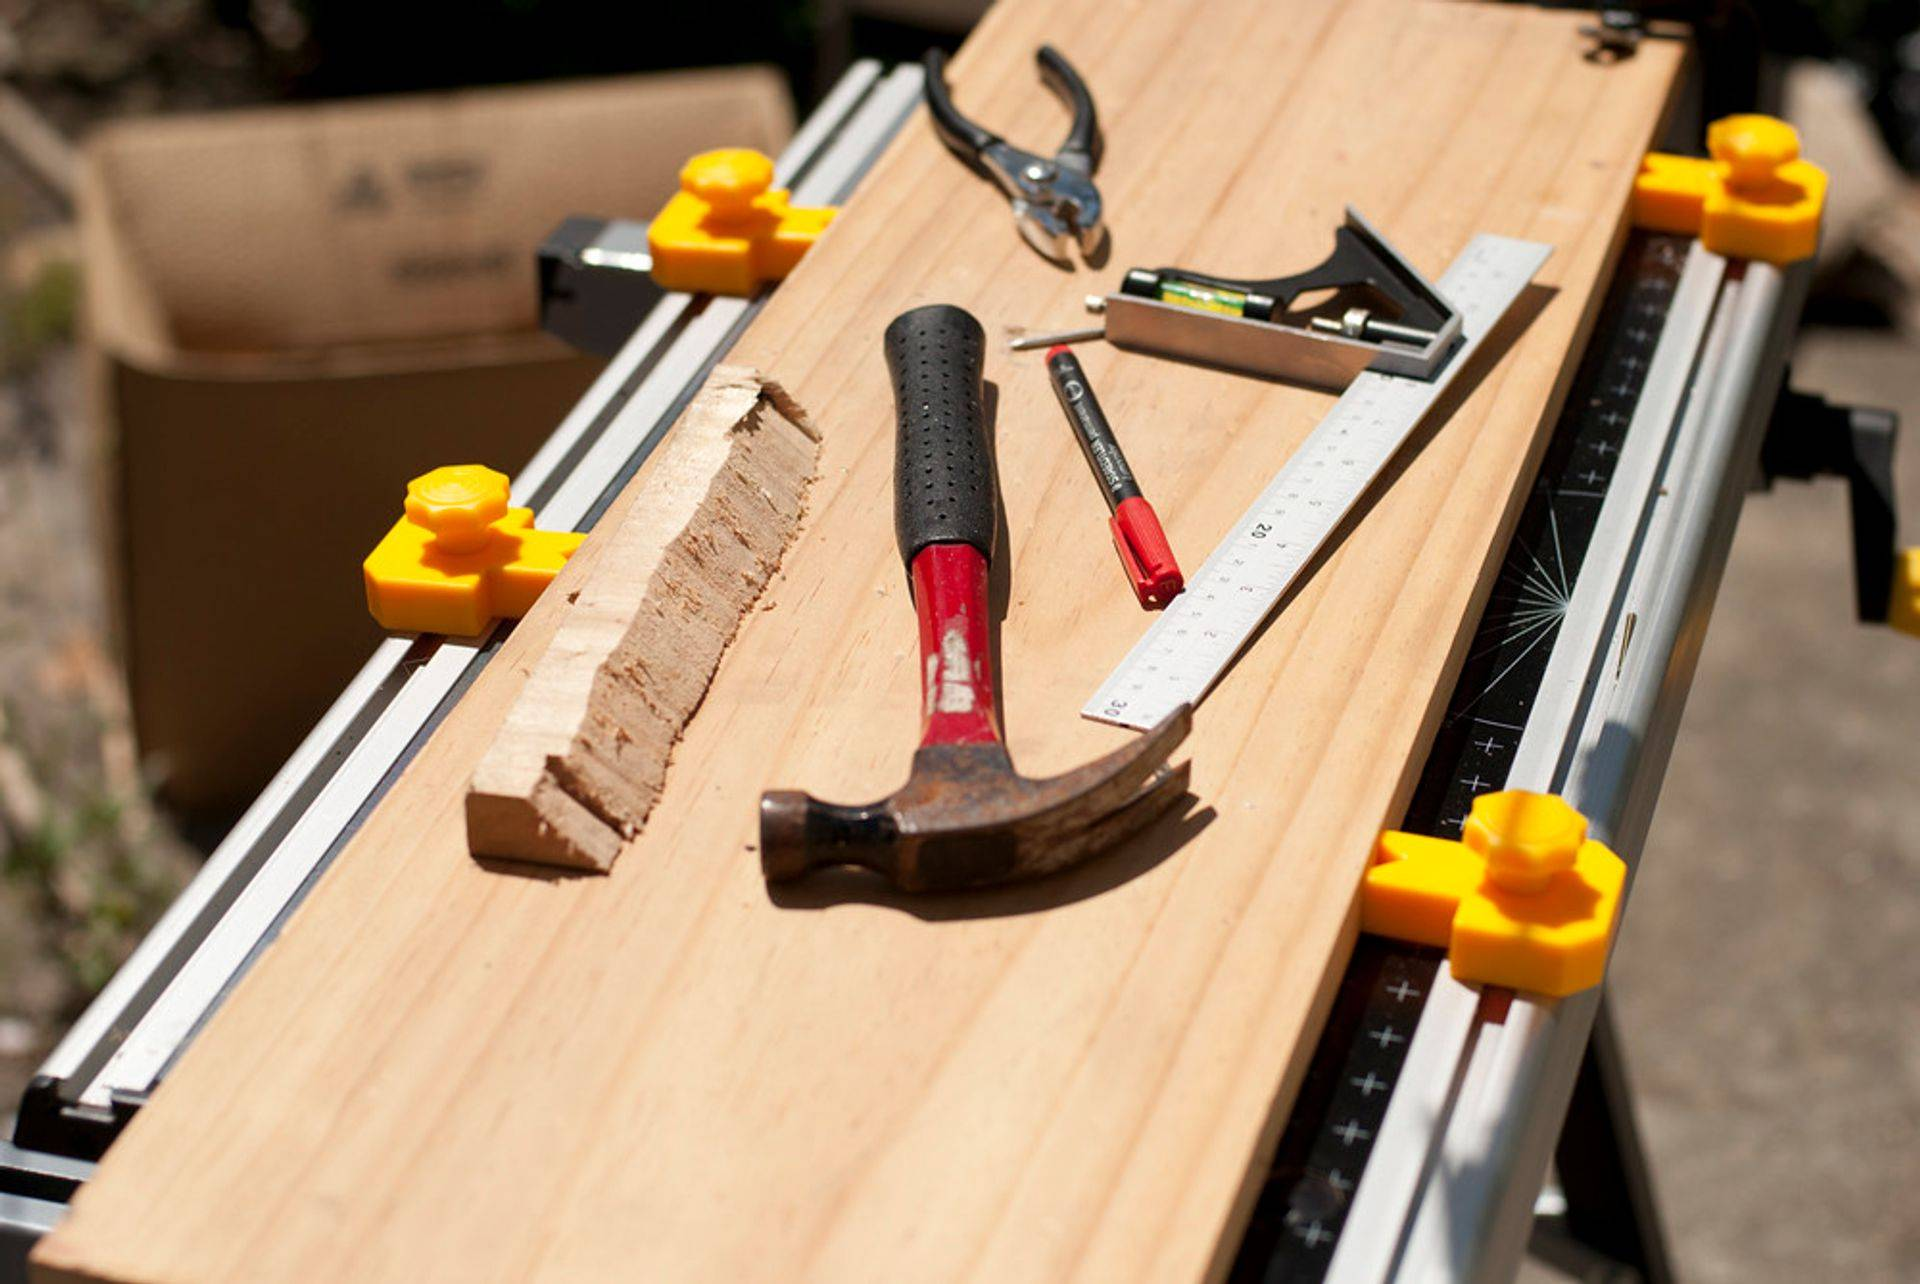 Tools we use to operate our business